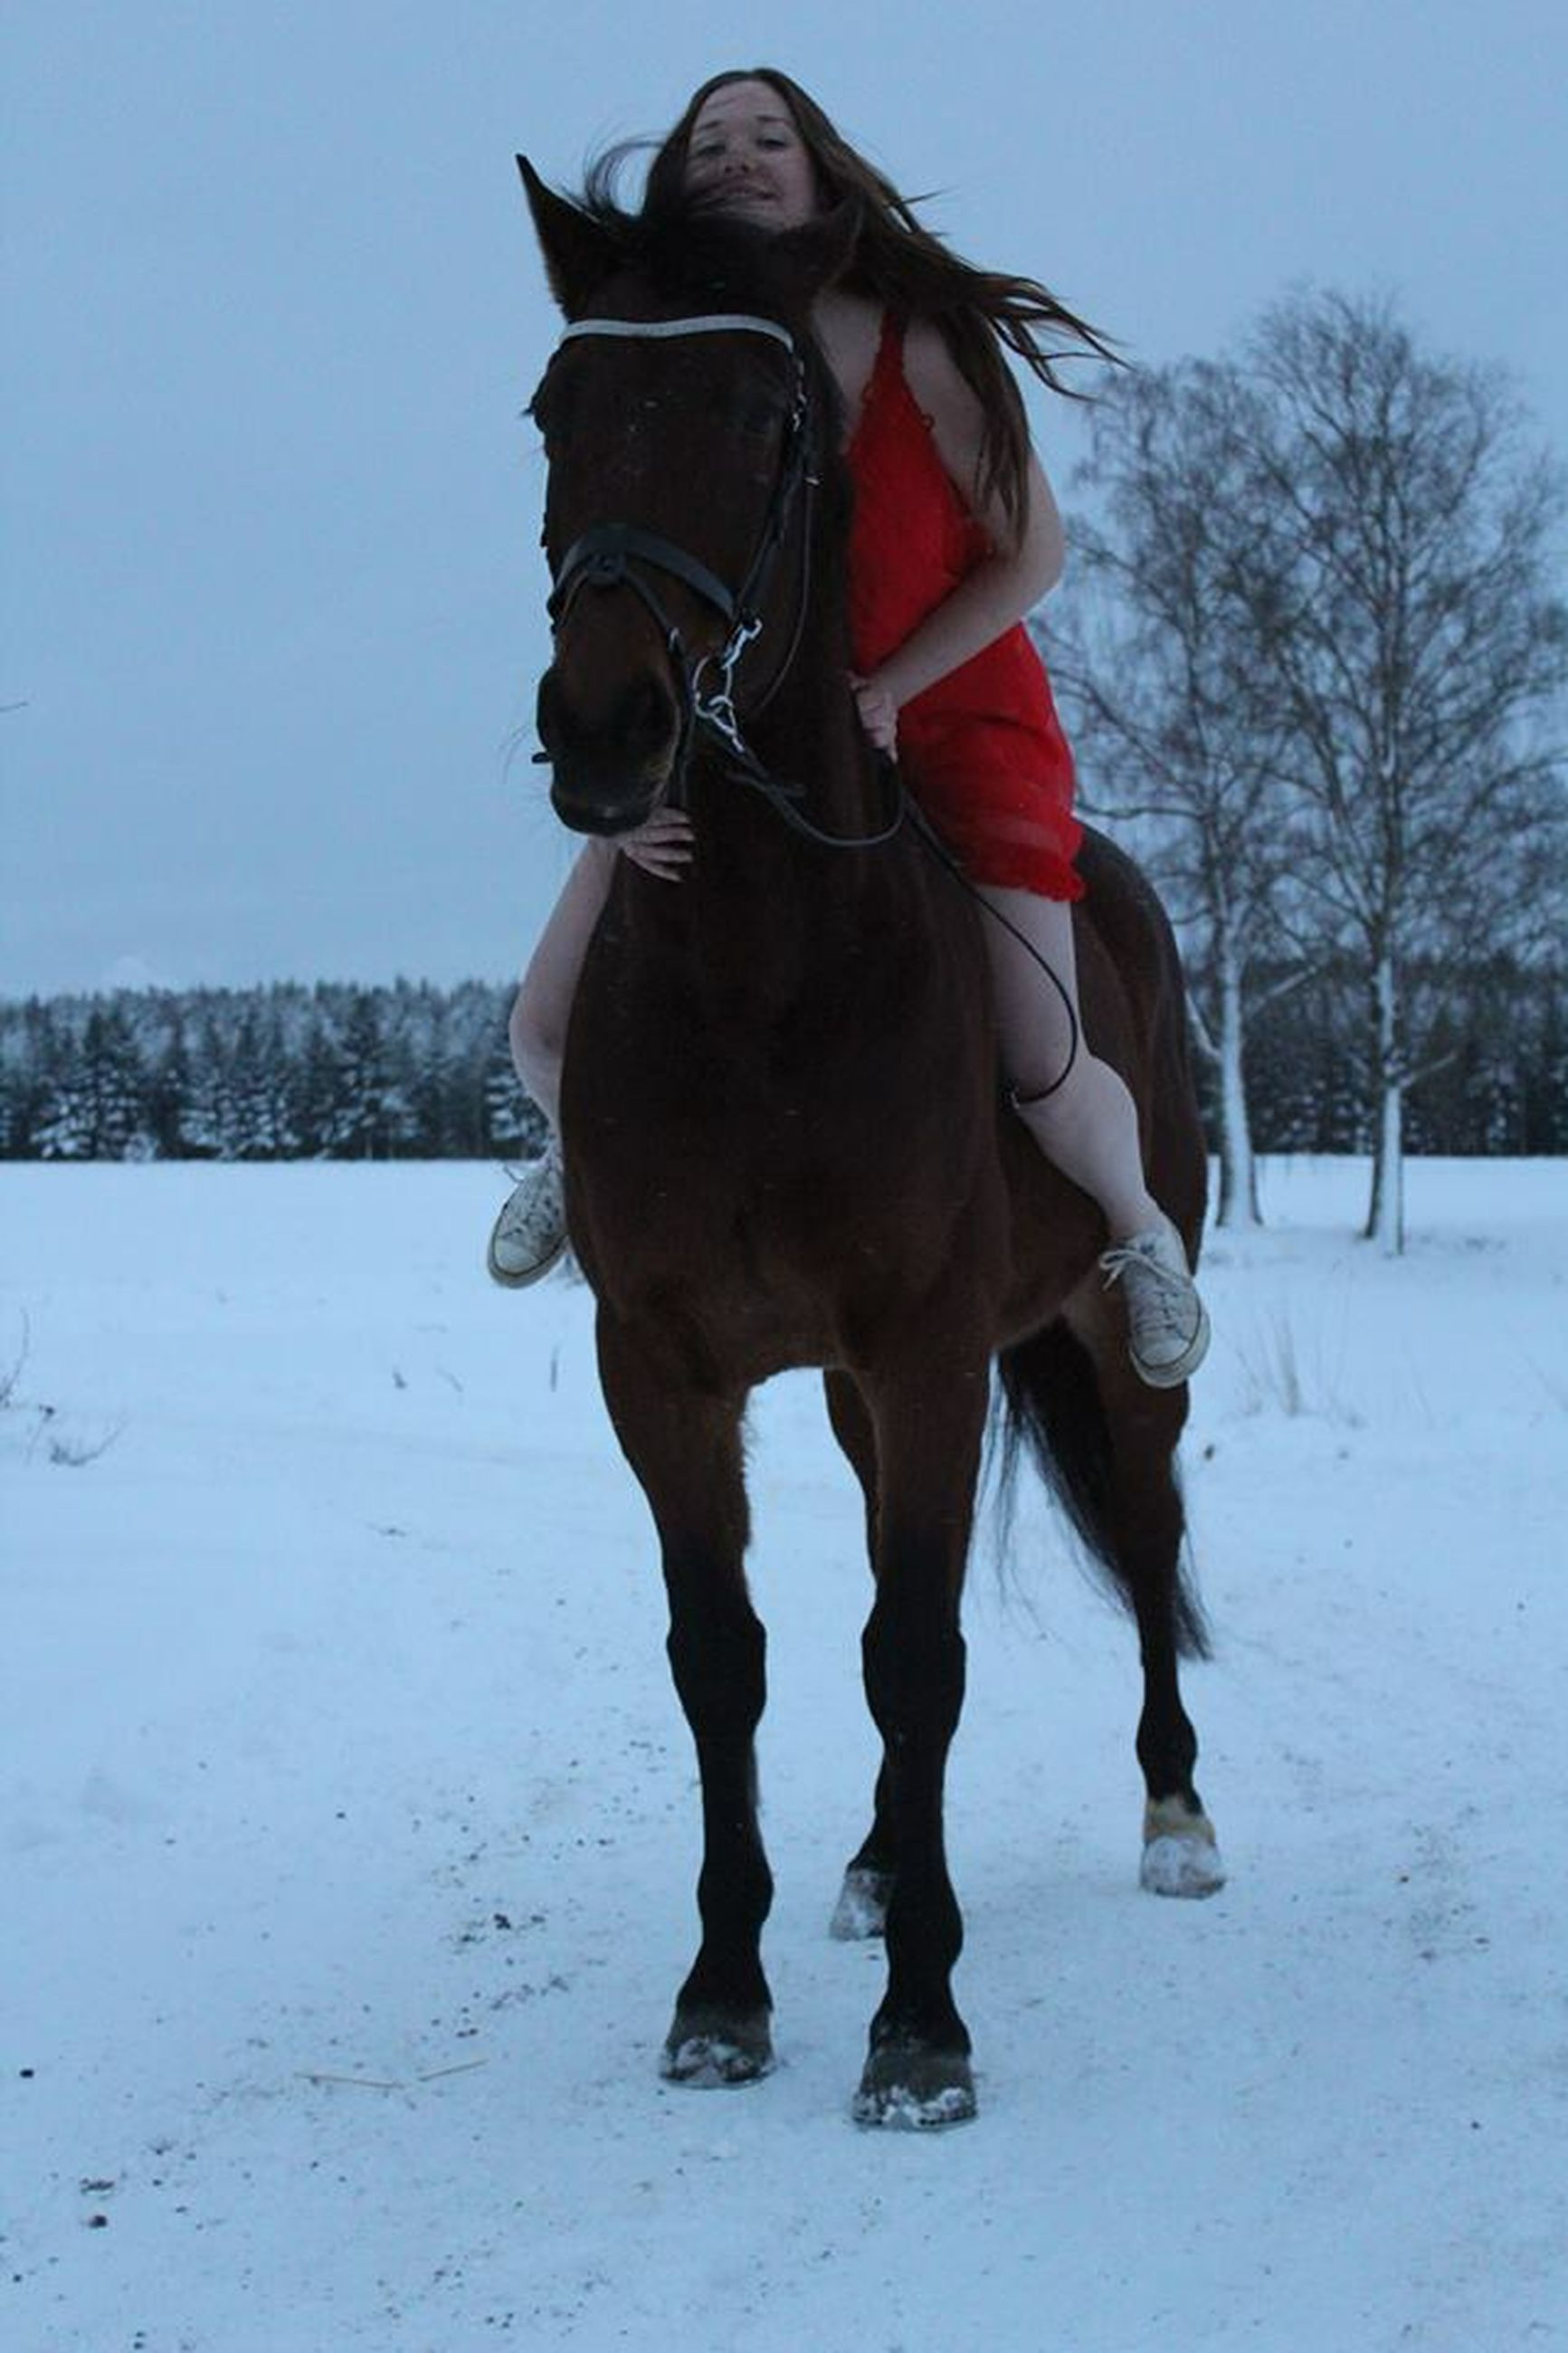 snow, winter, cold temperature, domestic animals, animal themes, horse, one animal, mammal, working animal, field, standing, dog, clear sky, season, landscape, full length, one person, livestock, front view, outdoors